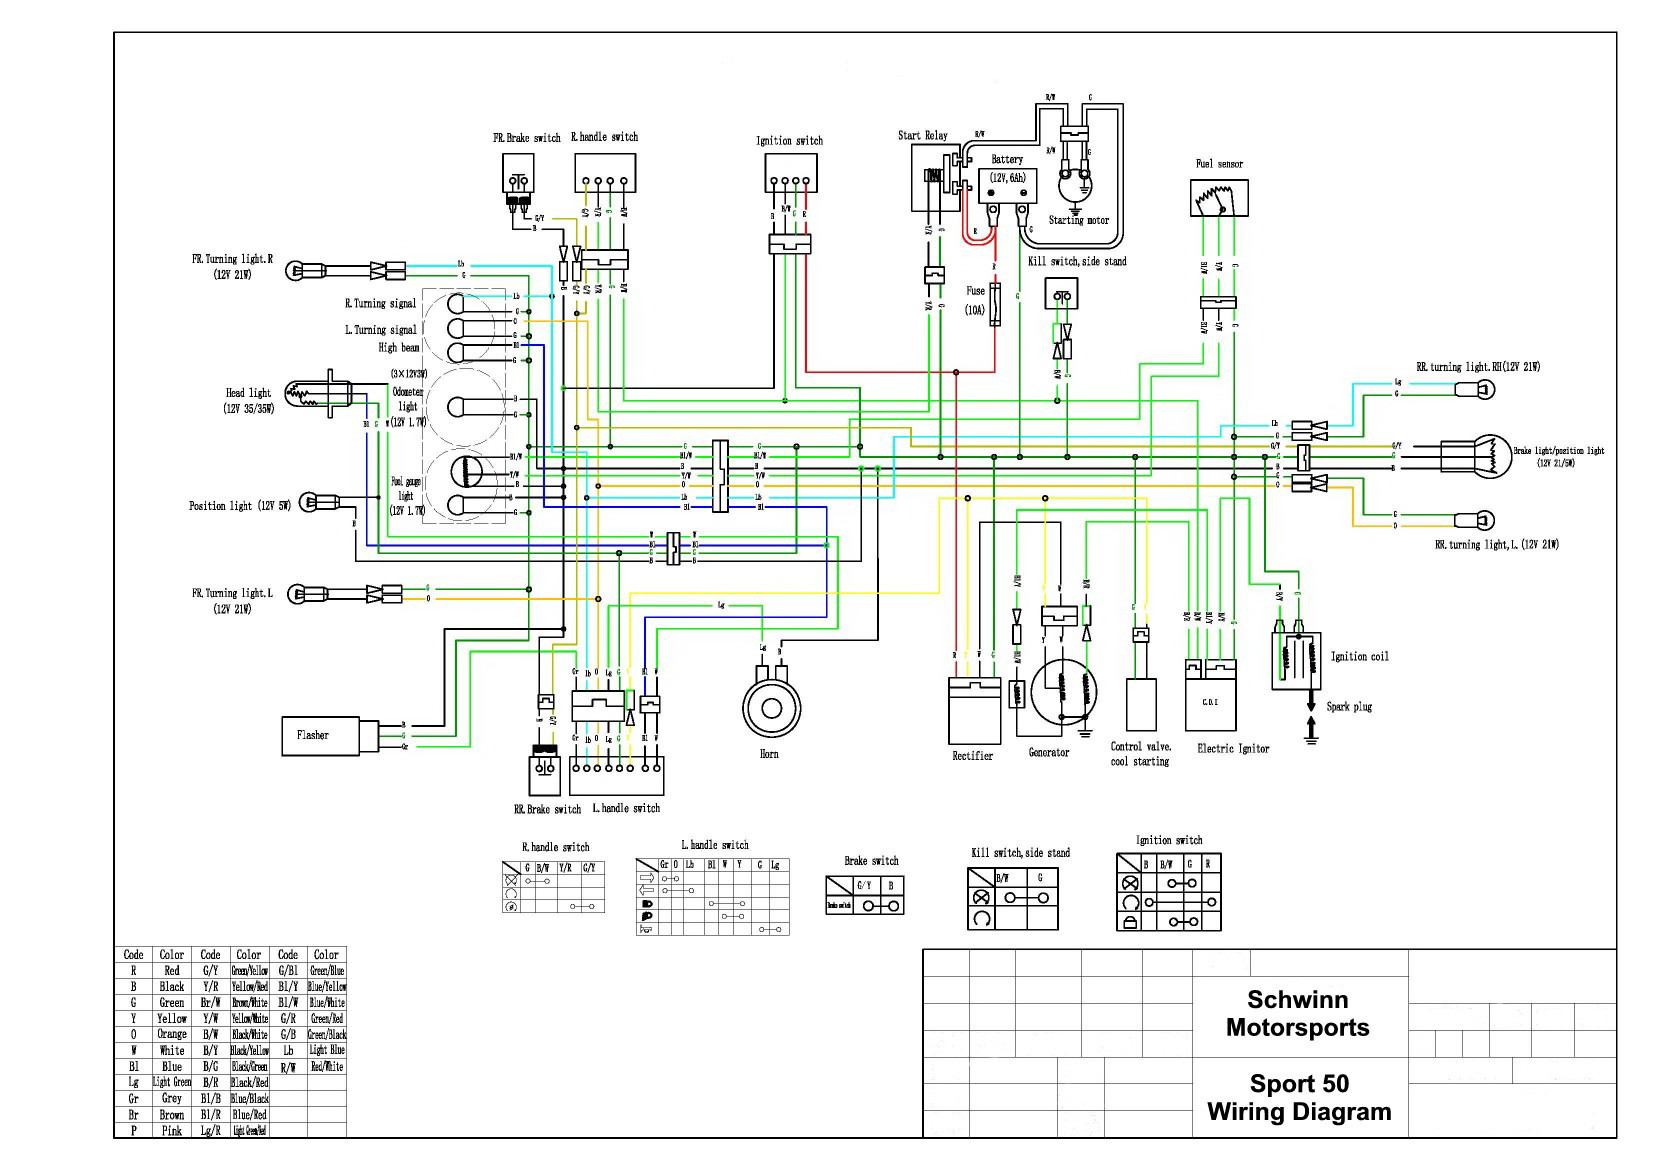 Pride victory scooter wiring diagram sample pride victory scooter wiring diagram victory trailer wiring diagram best pride mobility victory scooter wiring cheapraybanclubmaster Images